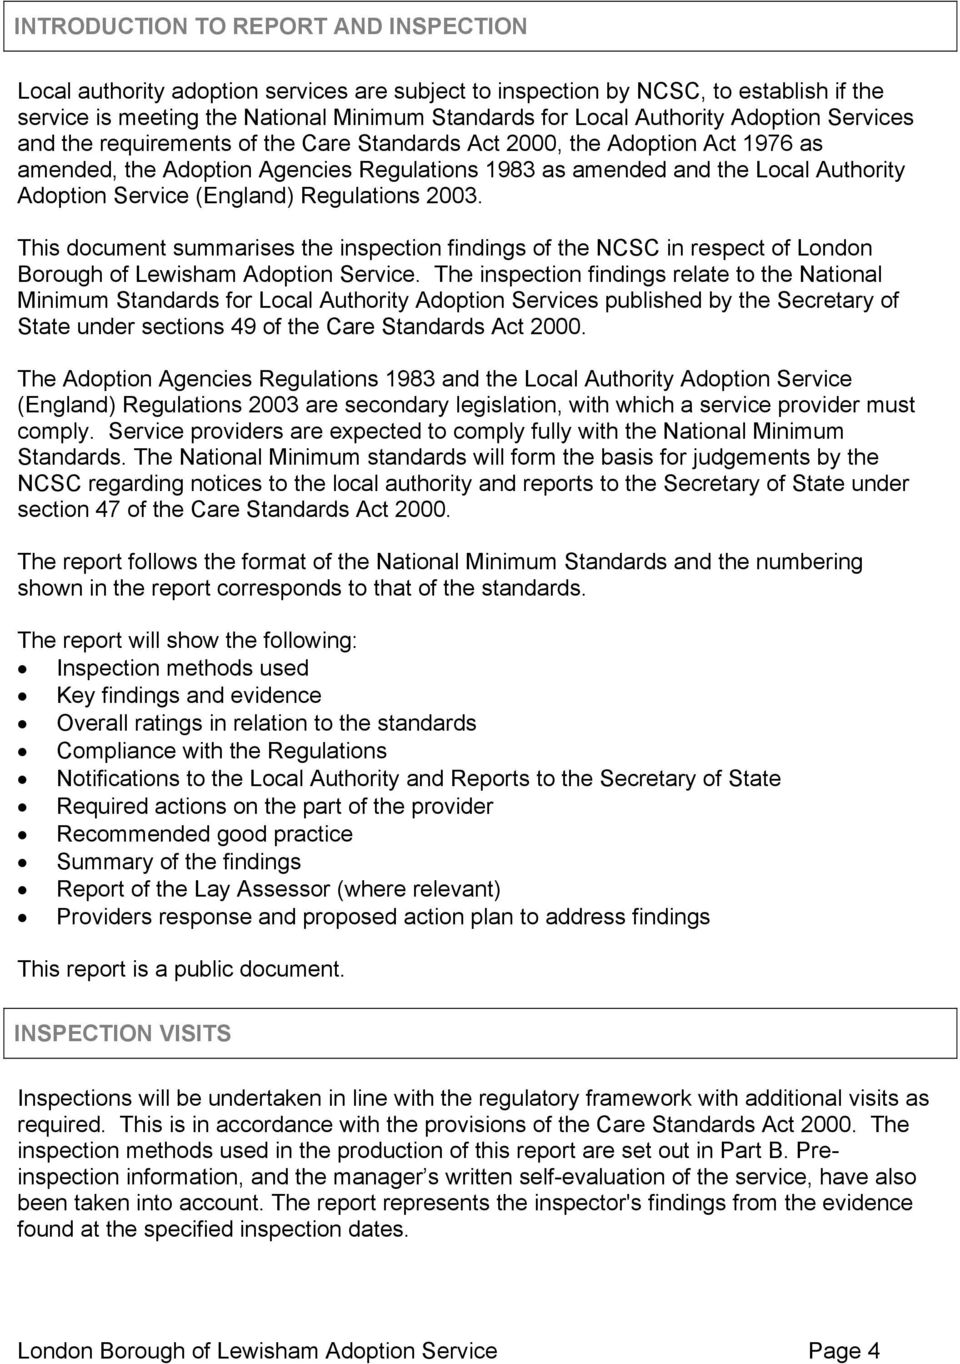 (England) Regulations 2003. This document summarises the inspection findings of the NCSC in respect of London Borough of Lewisham Adoption Service.